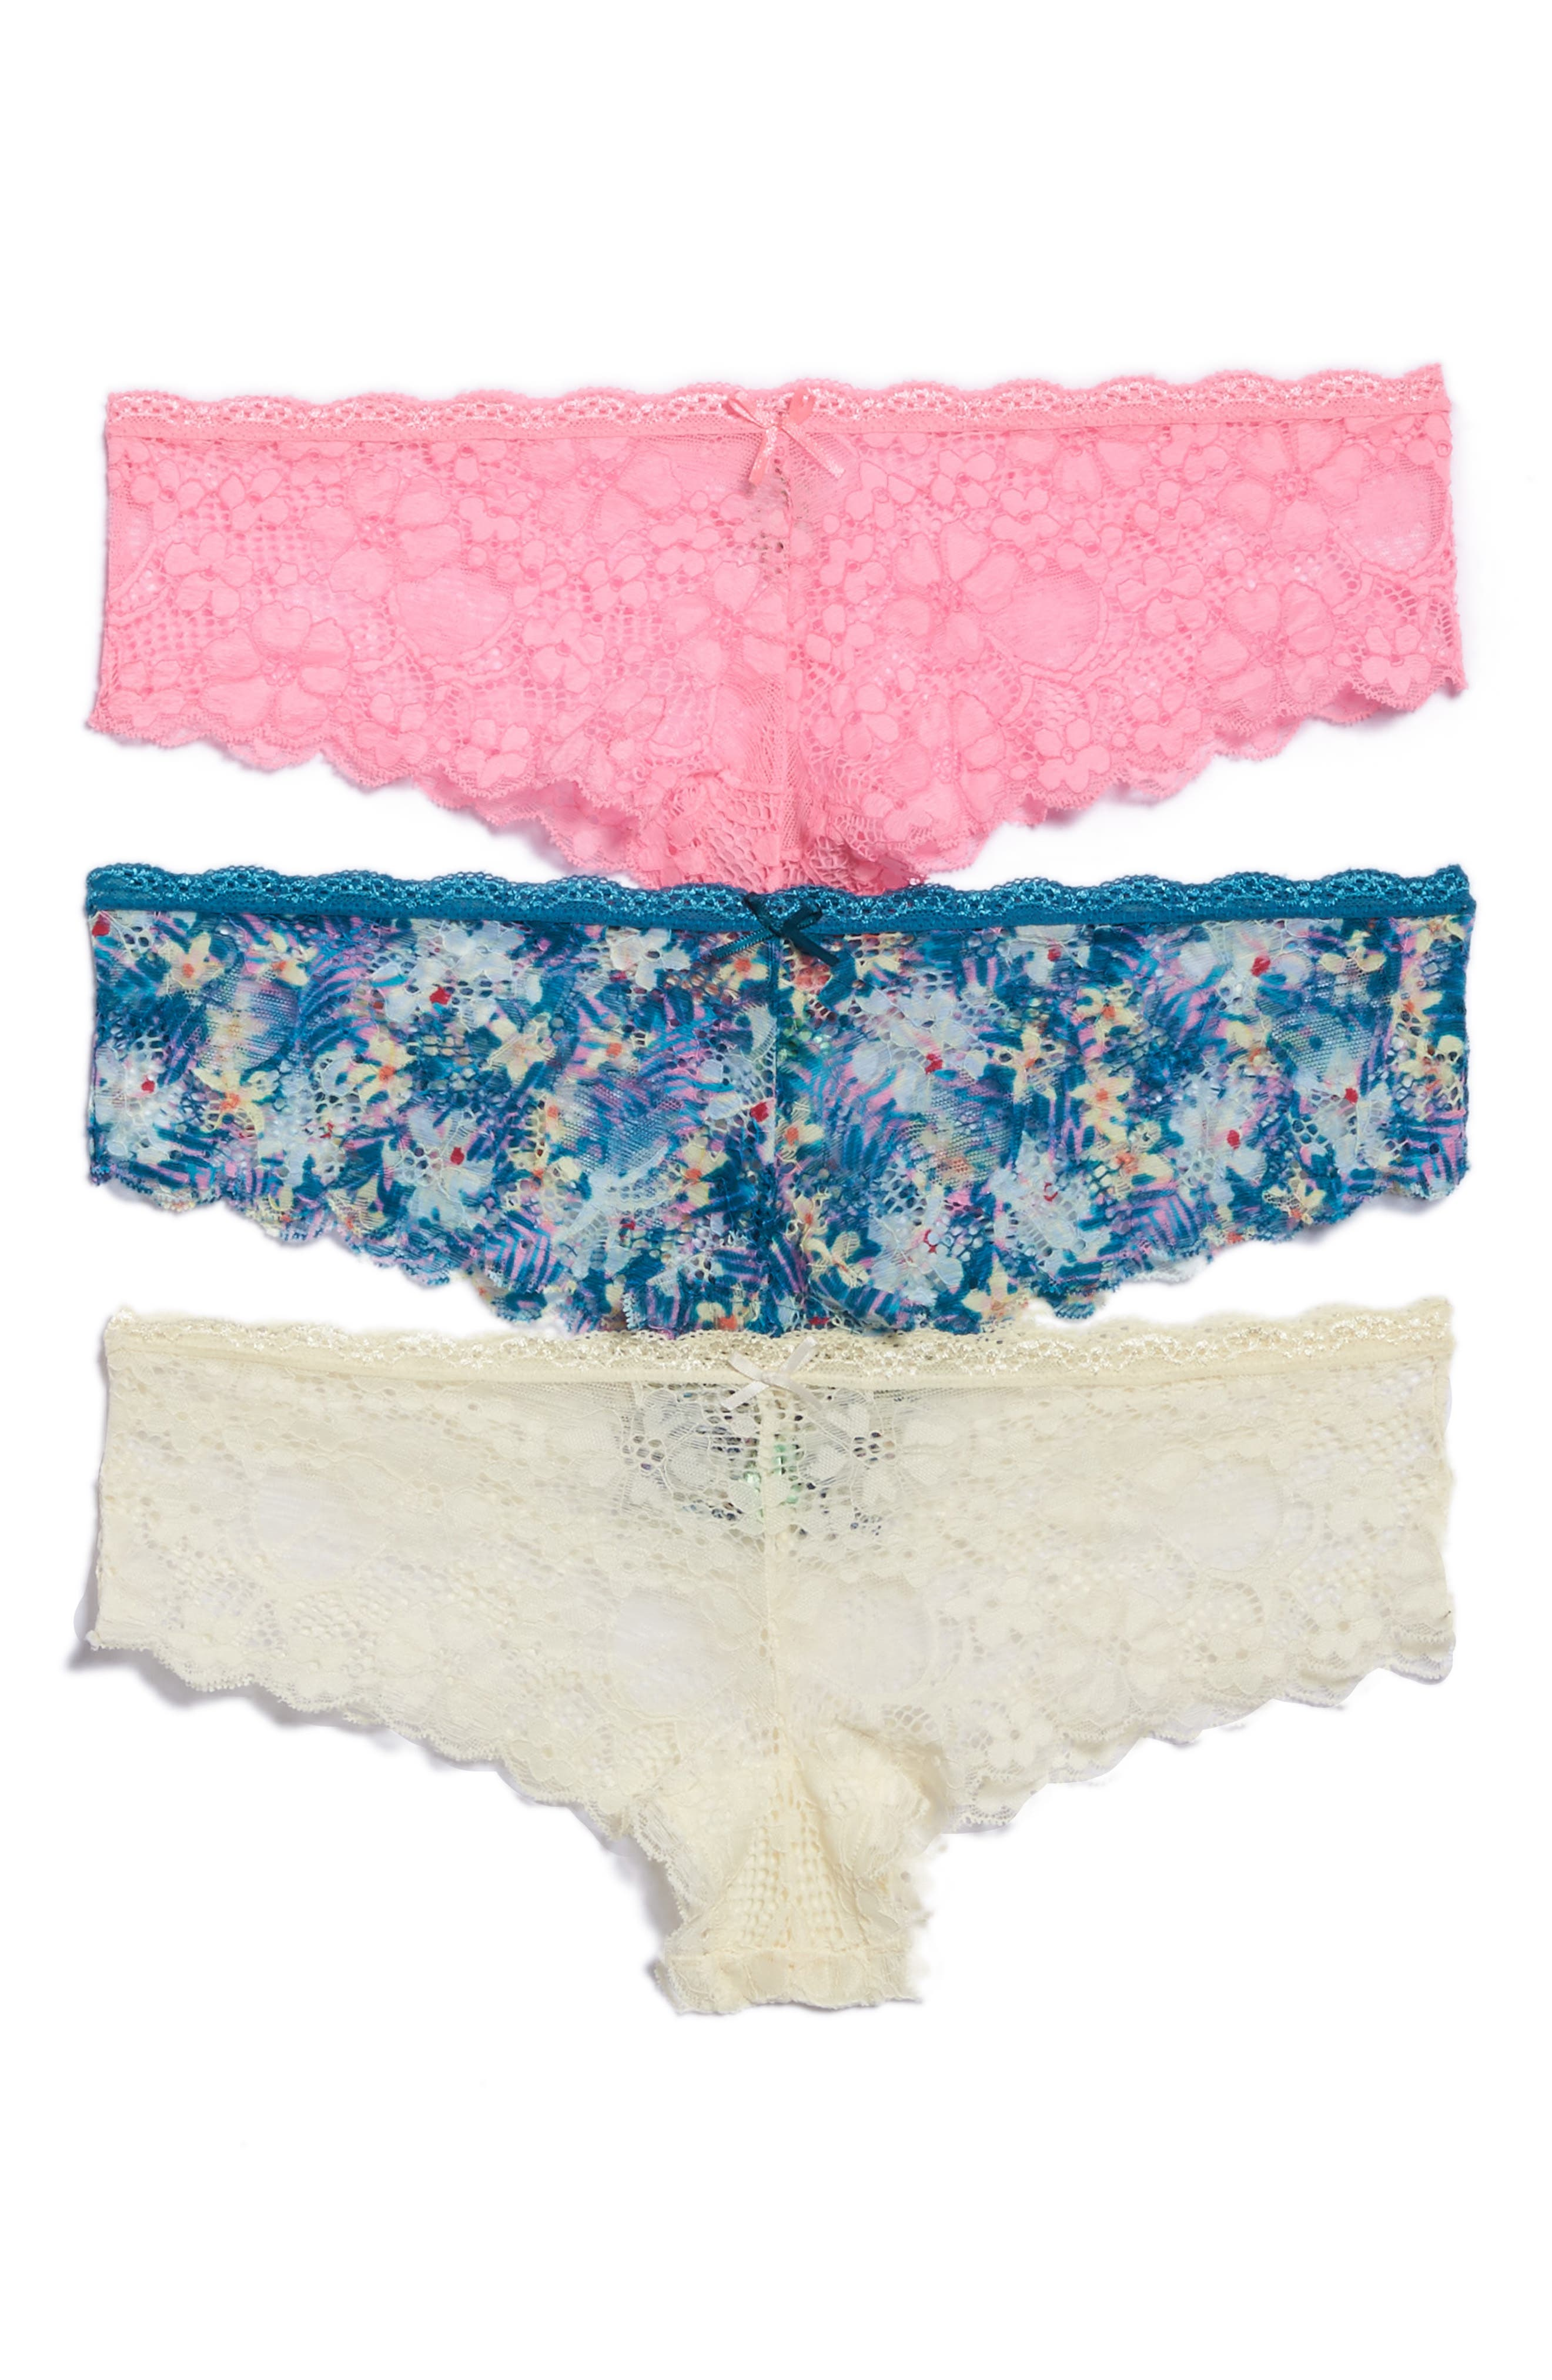 Alternate Image 1 Selected - Honeydew Intimates 3-Pack Lace Hipster Panties